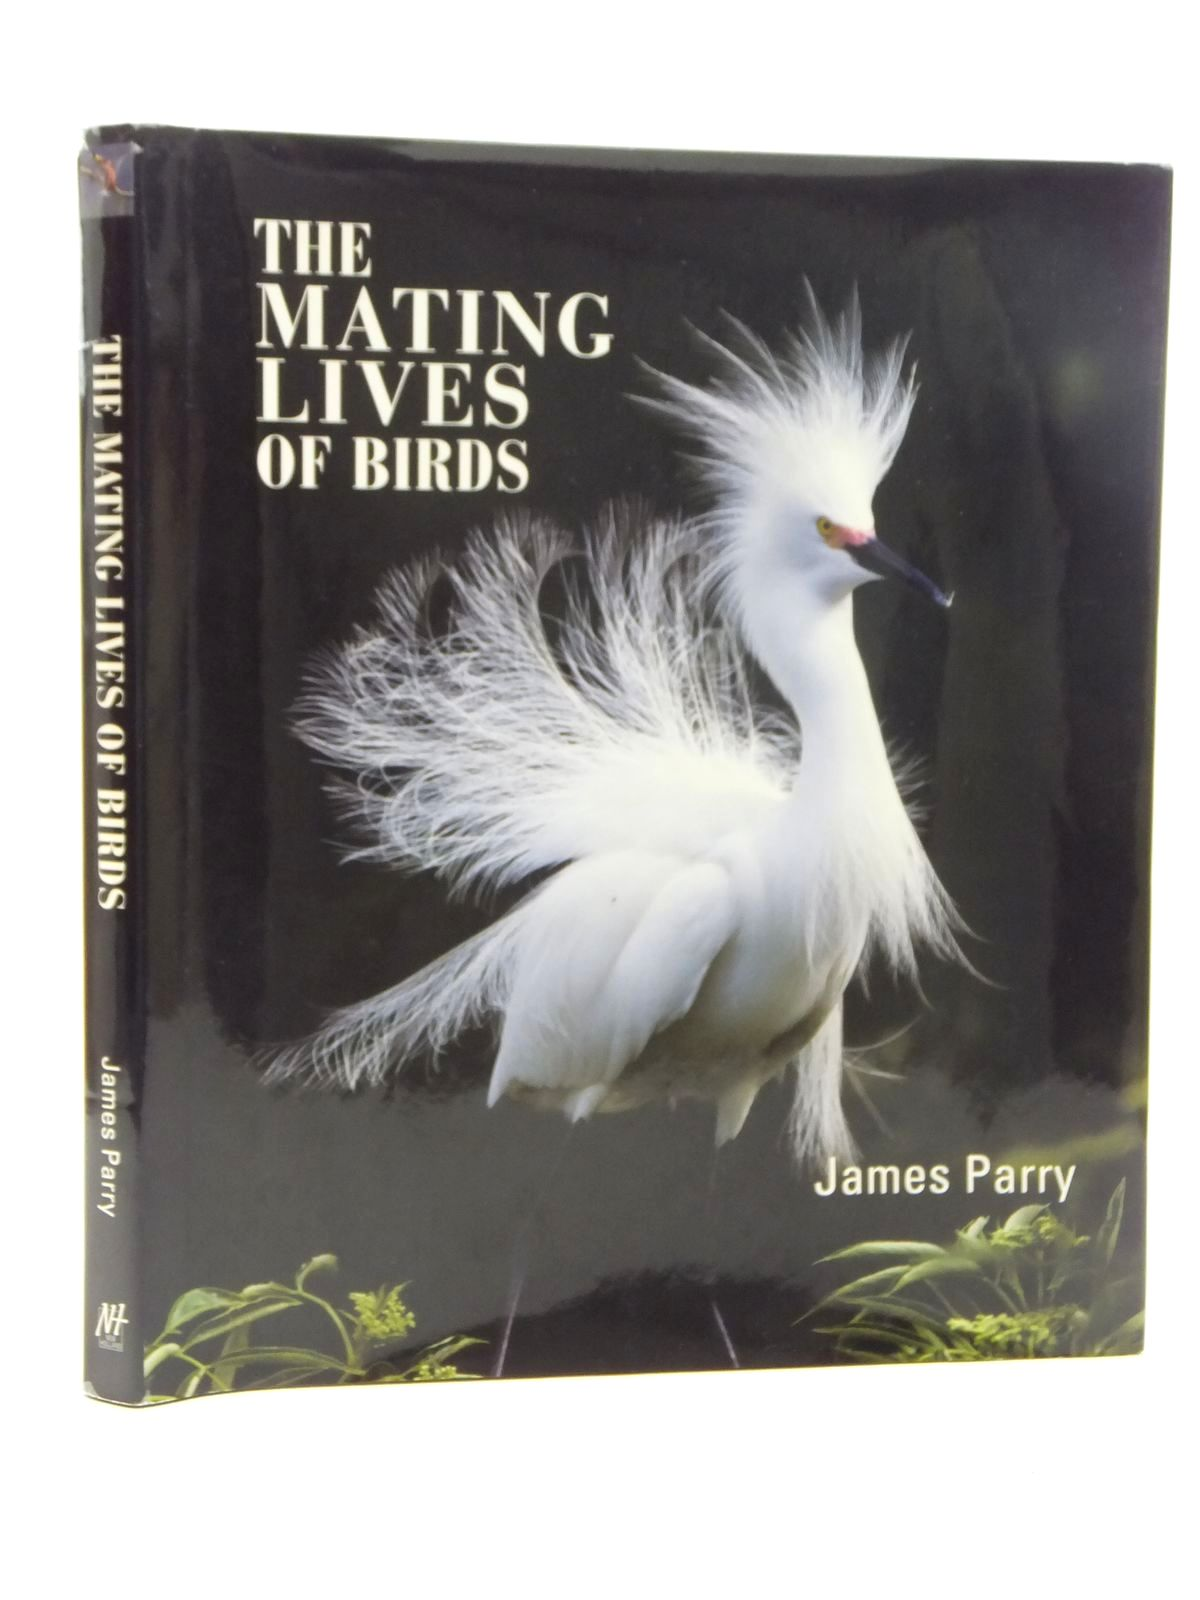 Photo of THE MATING LIVES OF BIRDS written by Parry, James published by New Holland Publishers (uk) Ltd (STOCK CODE: 1317100)  for sale by Stella & Rose's Books